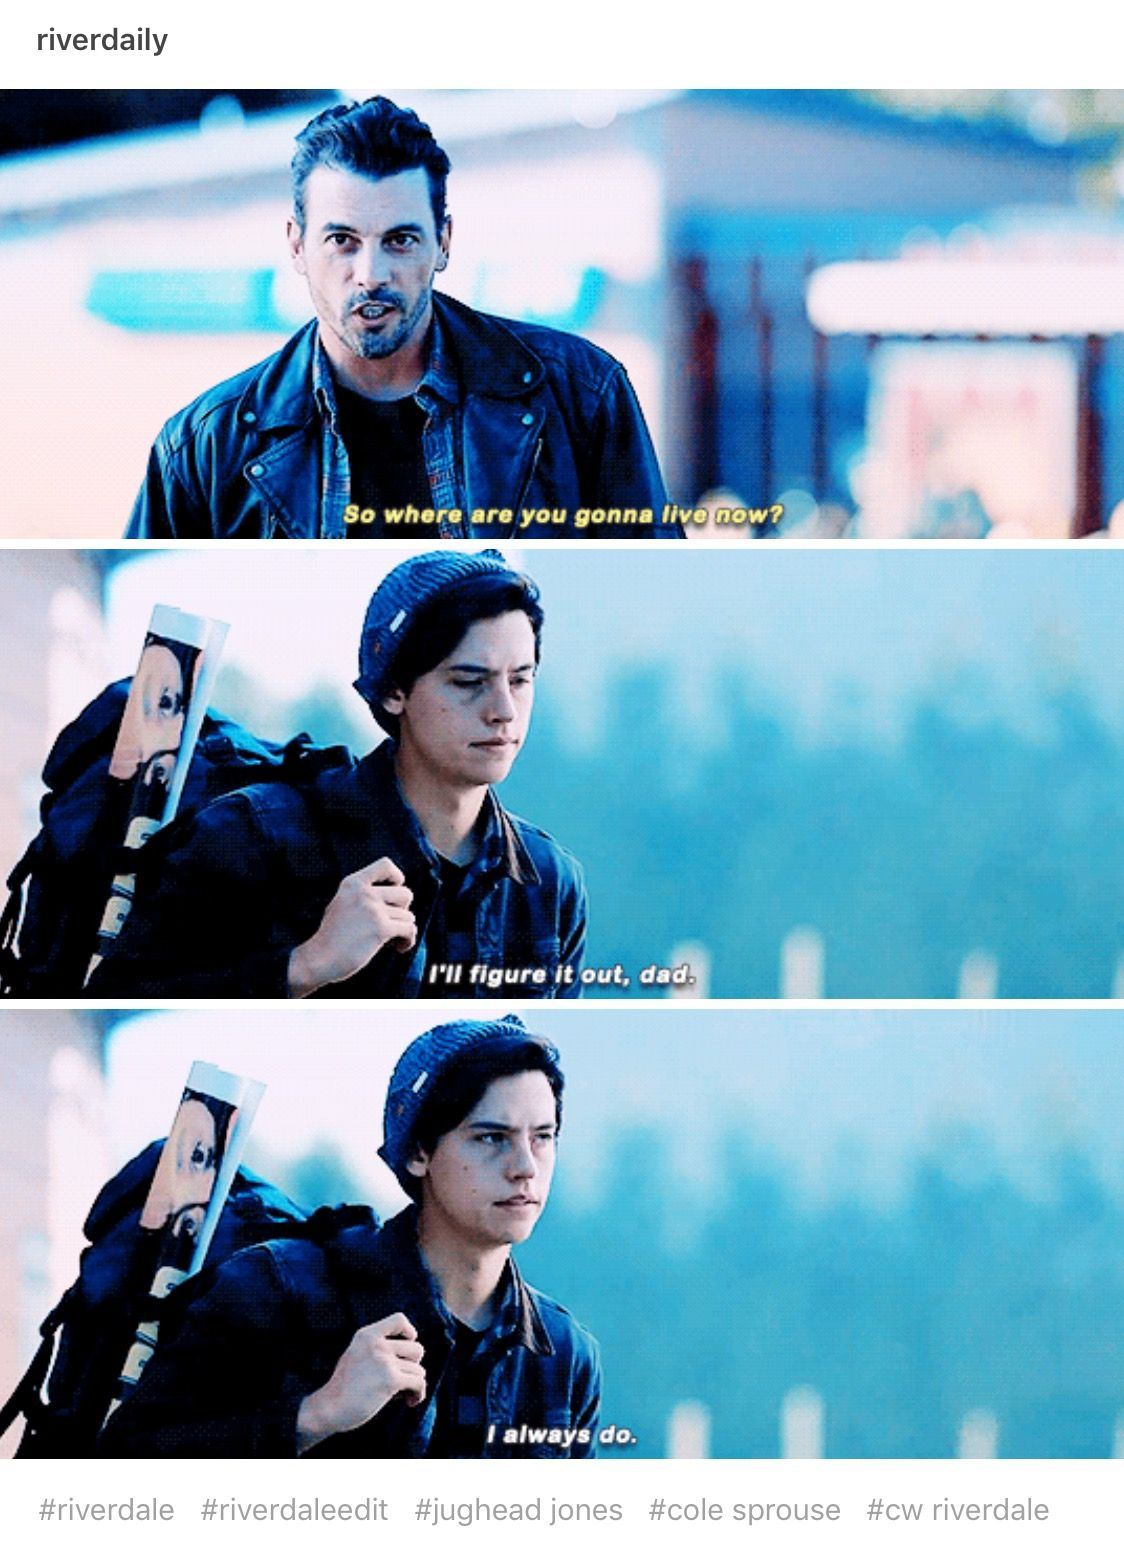 THIS WAS REALLY SAD AND ALSO JUGHEAD WAS REALLY ATTRACTIVE